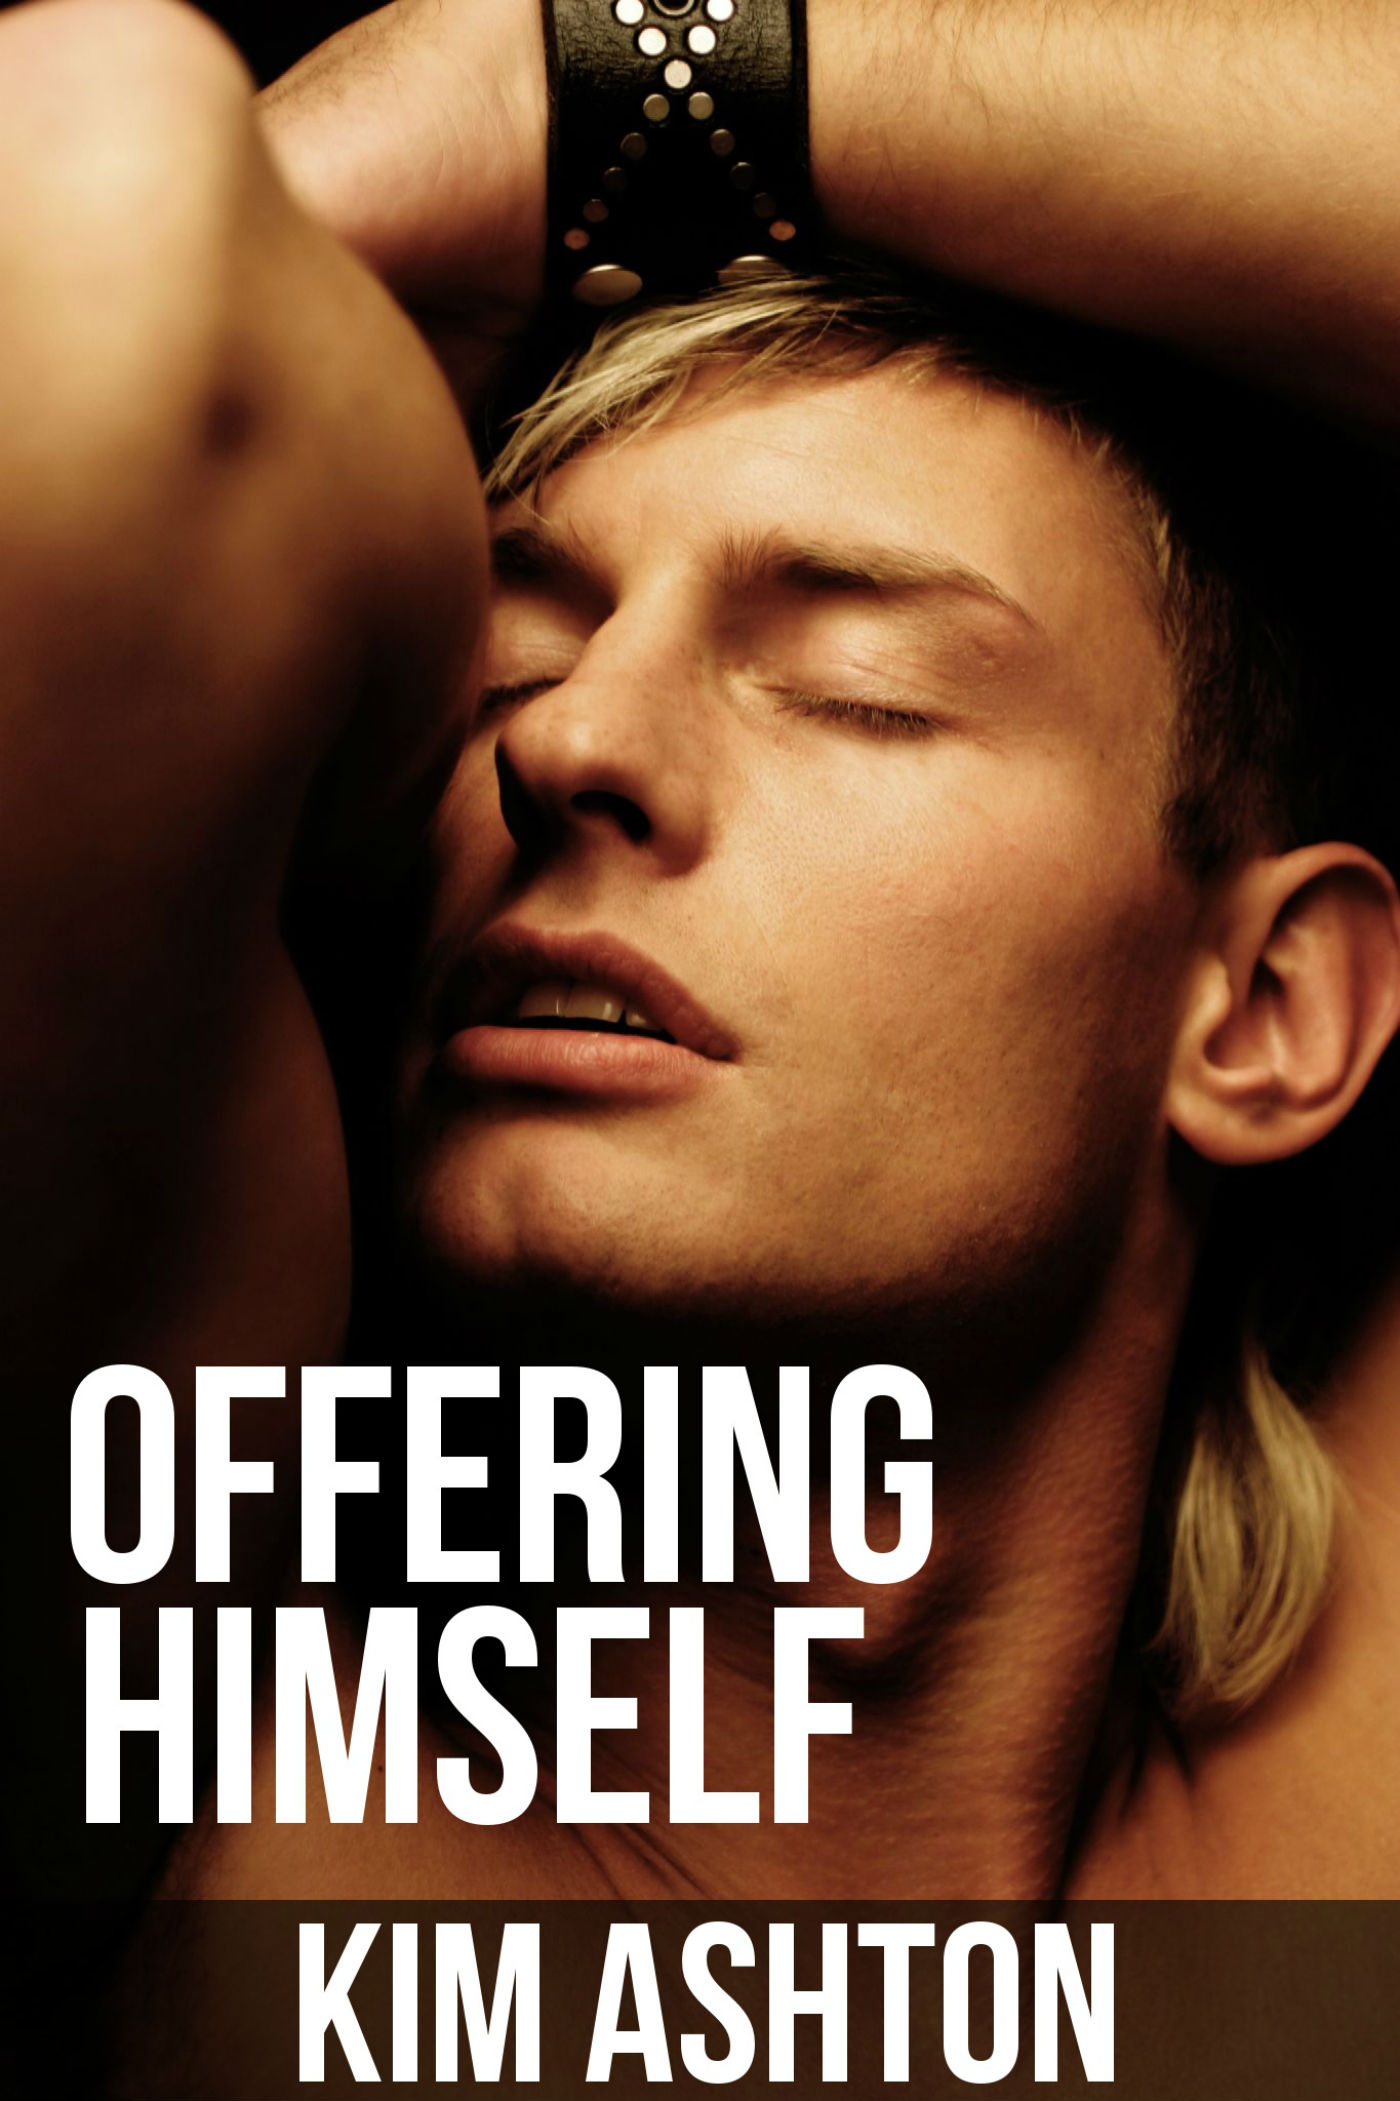 Kim Ashton - Offering Himself (Gay Erotic Romance, BDSM Erotica)